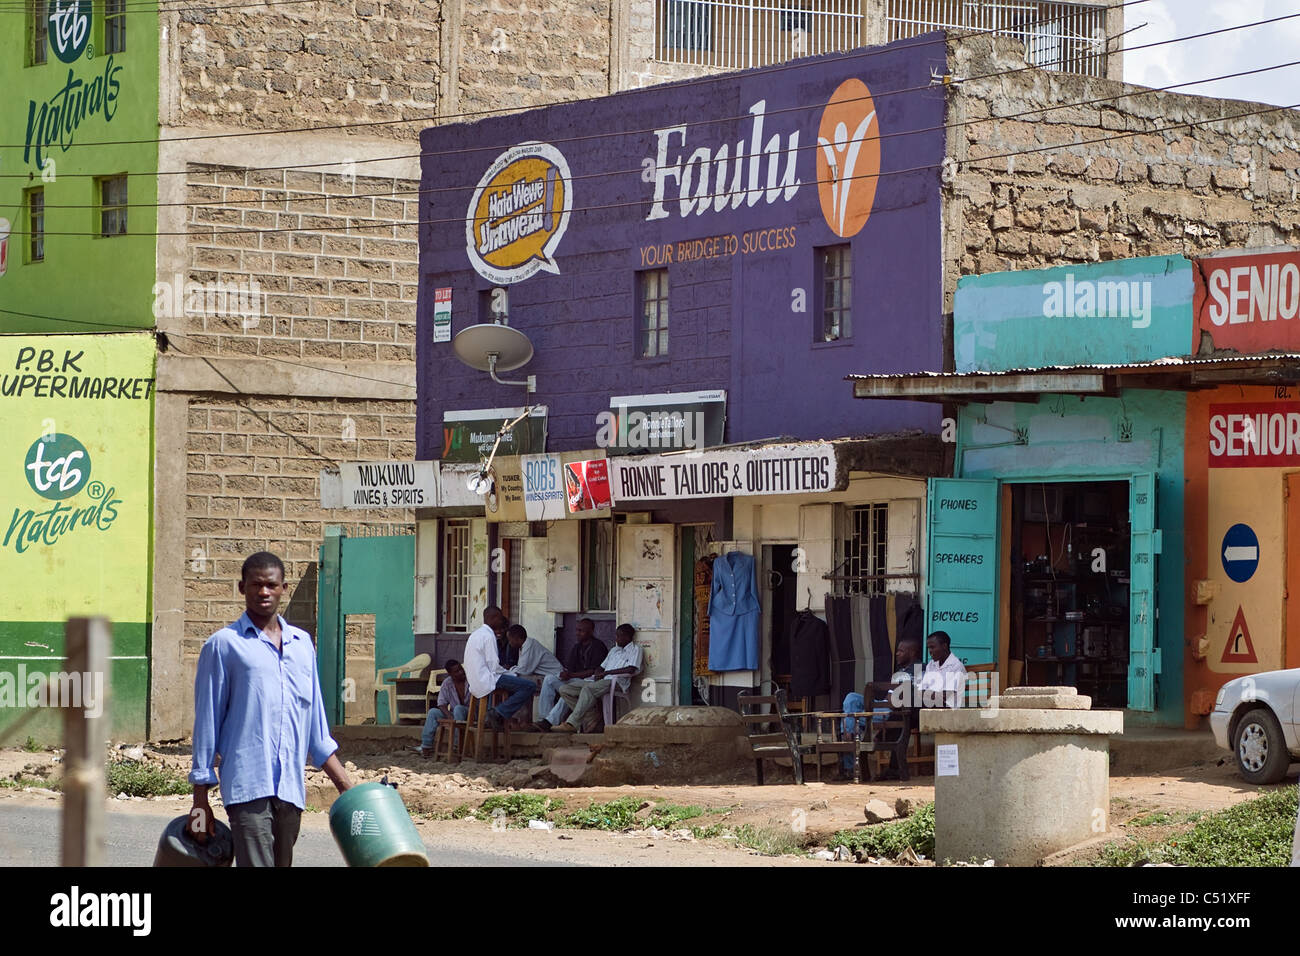 Foreground man with water containers walking past tailer shop, Nairobi slums, Kenya - Stock Image